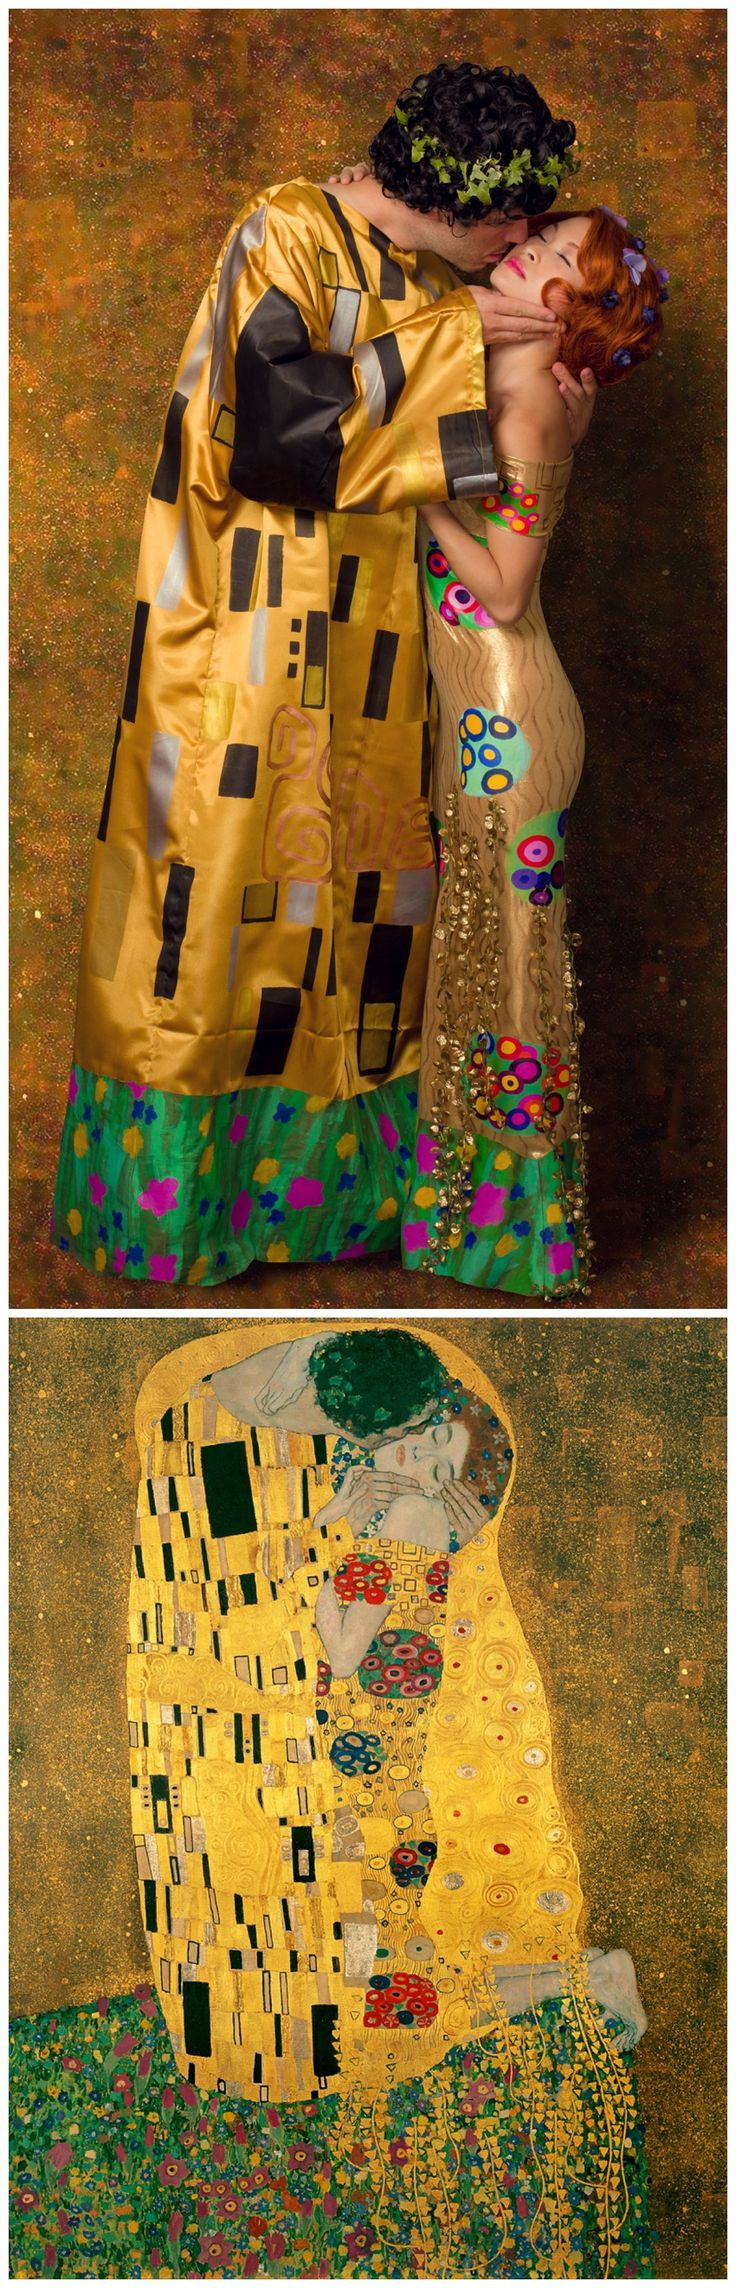 "Recreation of Gustav Klimt's painting ""The Kiss"" / Halloween Costume.. I want to do this with my hubby, this is one of my favorite paintings and we could put a nice twist on it with our multicultural flavor! Daryn what do you think of that idea? Let's plan it..."